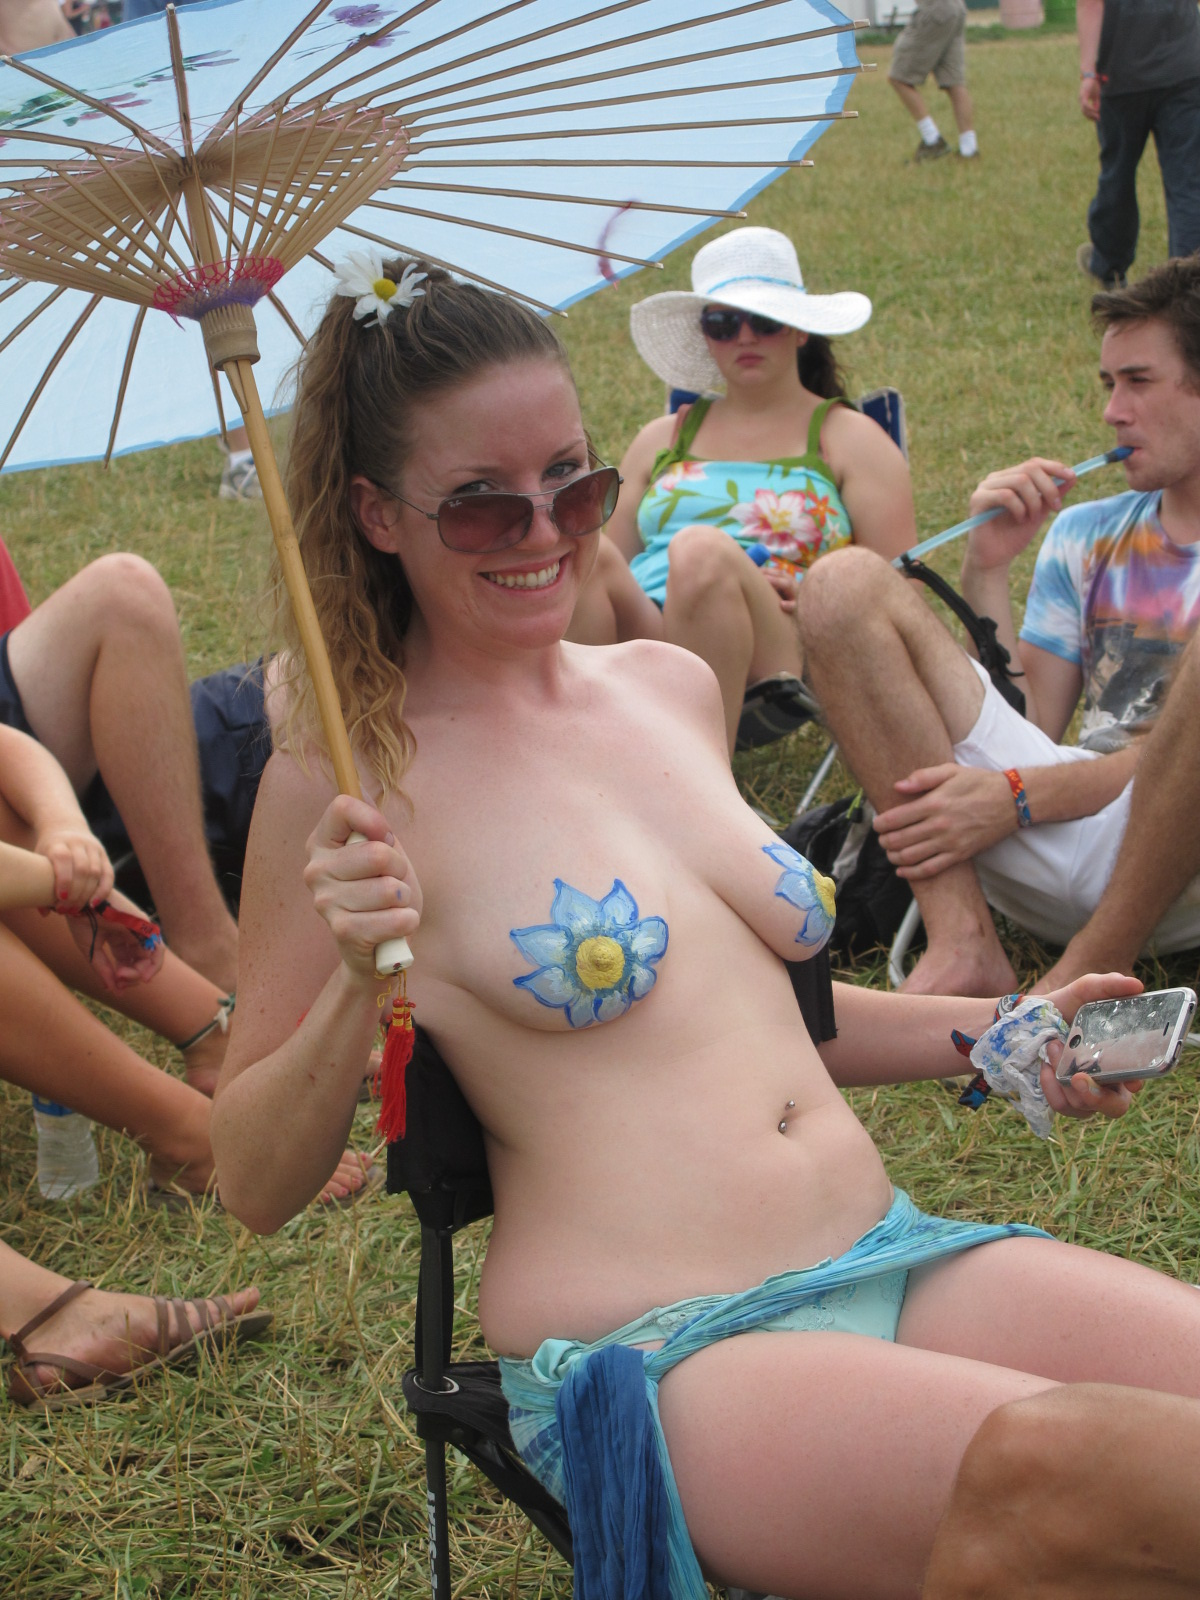 sex at bonnaroo